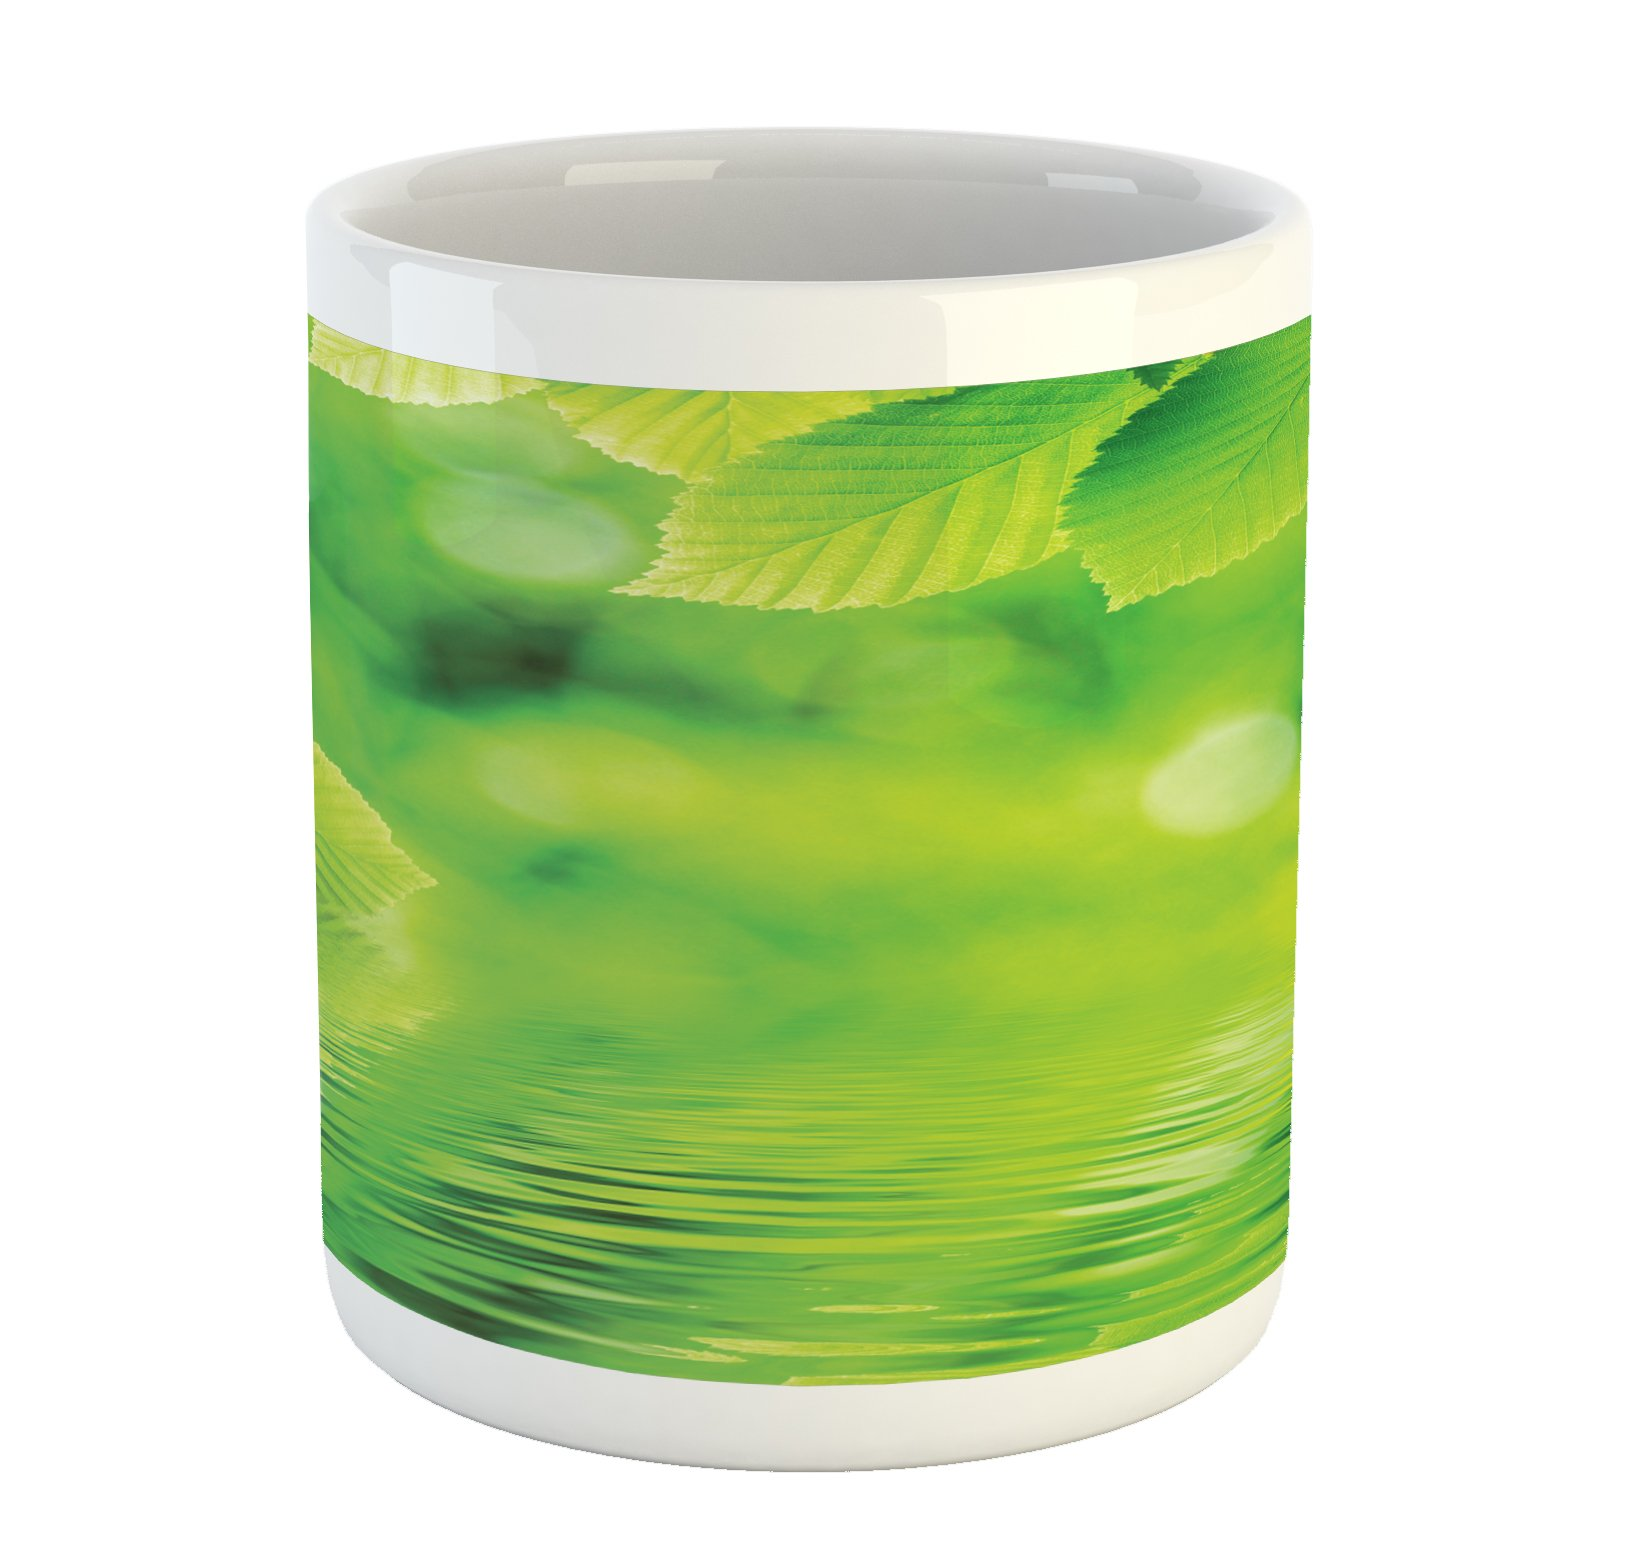 Ambesonne Leaves Mug, Leaves in Water Spa Open Your Chakra with Nature Meditation Ecological Monochrome Photo, Printed Ceramic Coffee Mug Water Tea Drinks Cup, Green